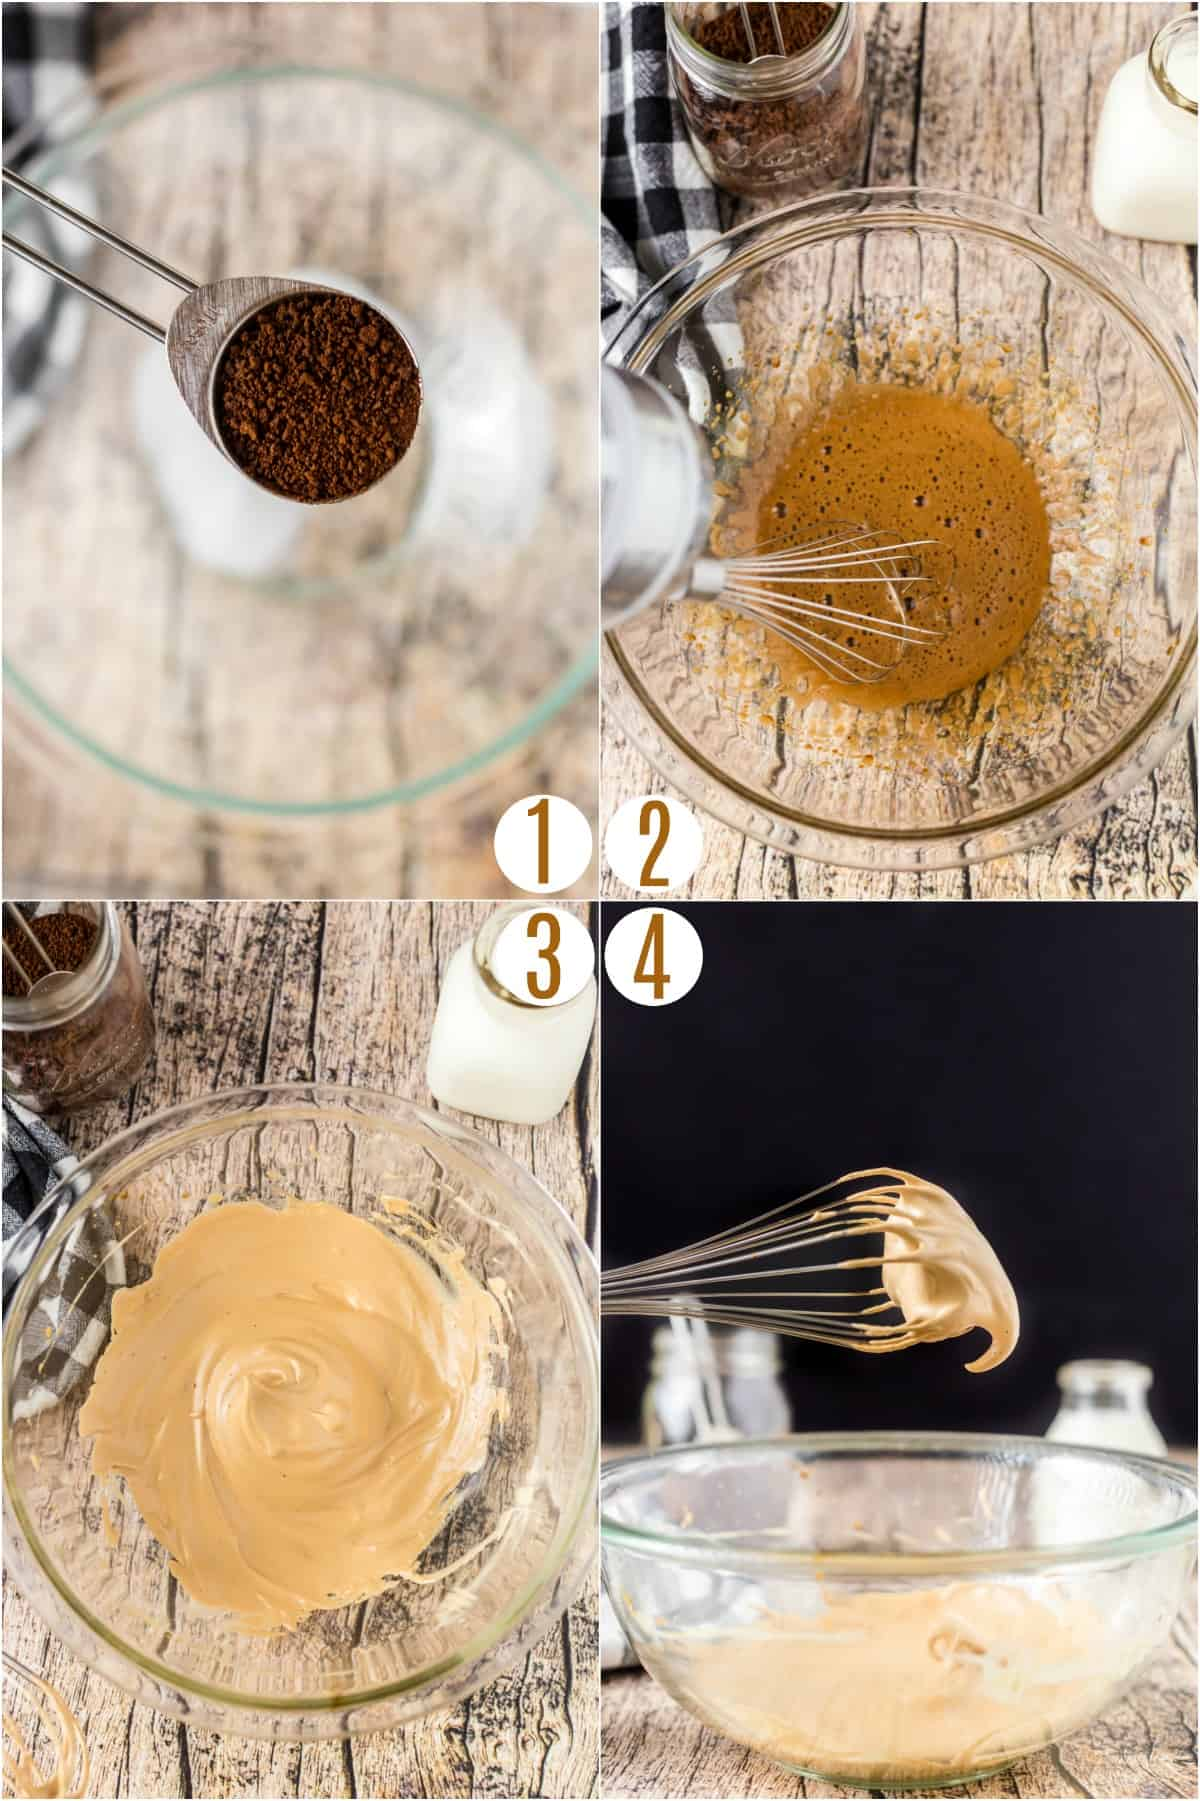 Step by step photo collage on how to make whipped coffee drink.